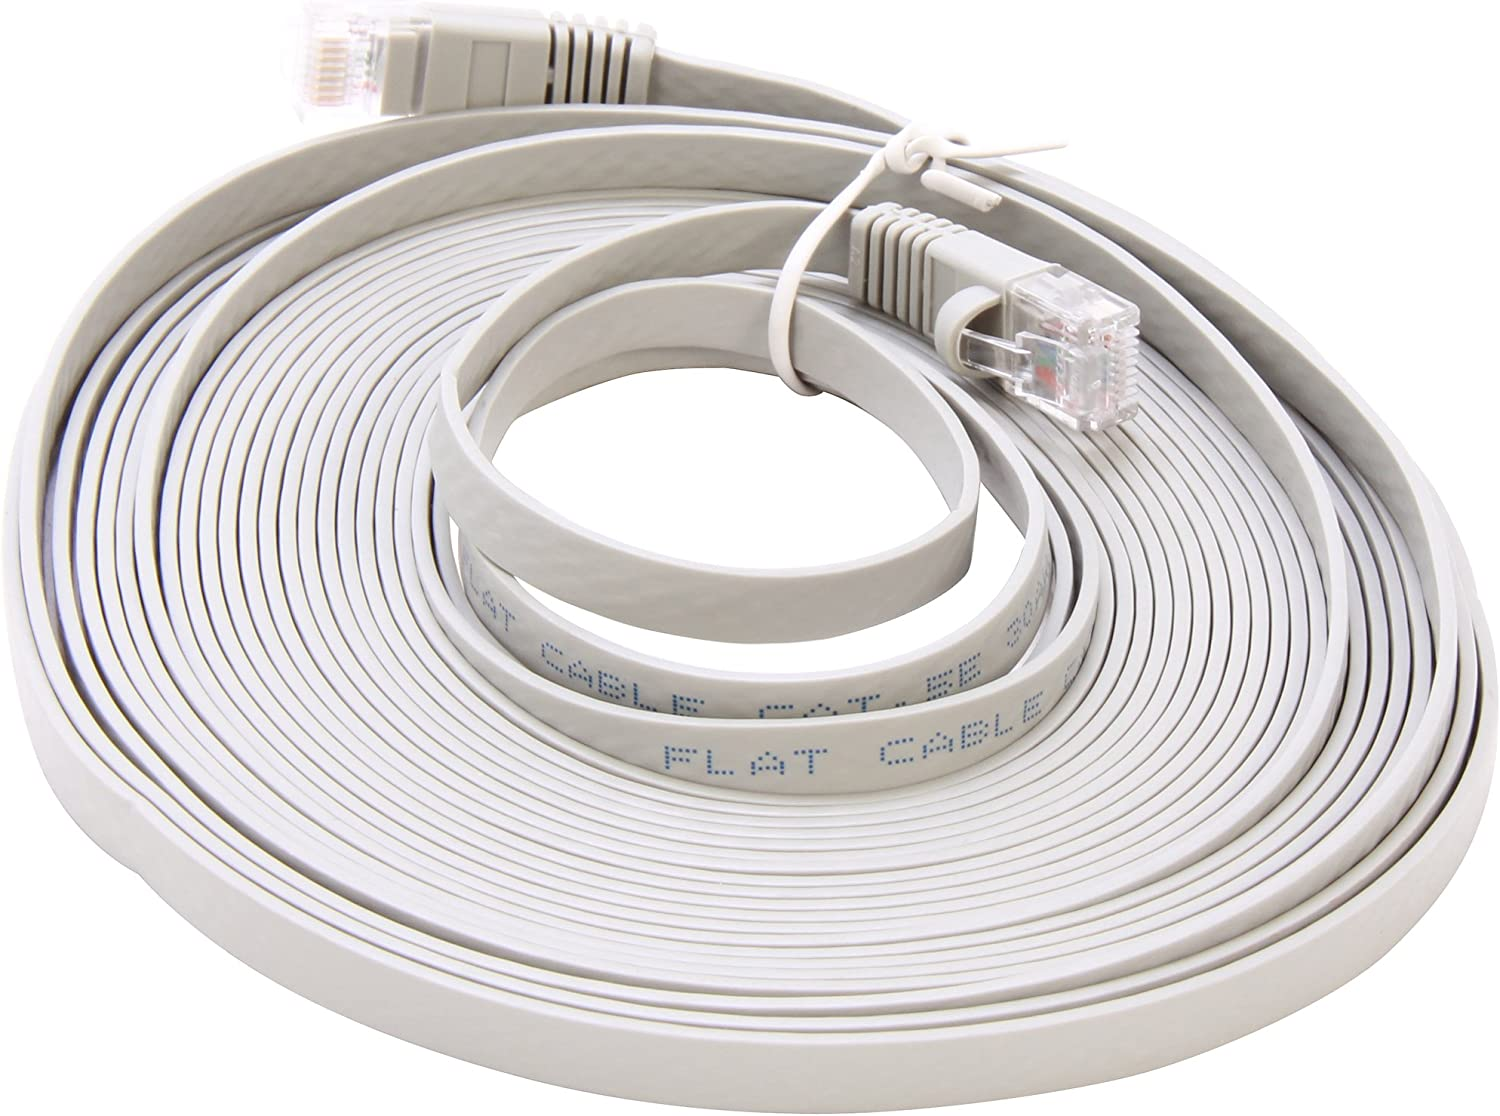 Coboc CY-CAT6-100-Gray 100-Feet 32AWG Cat 6 550MHz UTP Flat Ethernet Stranded Copper Patch Cord Network Gray Cable CY-CAT6-100-Gray